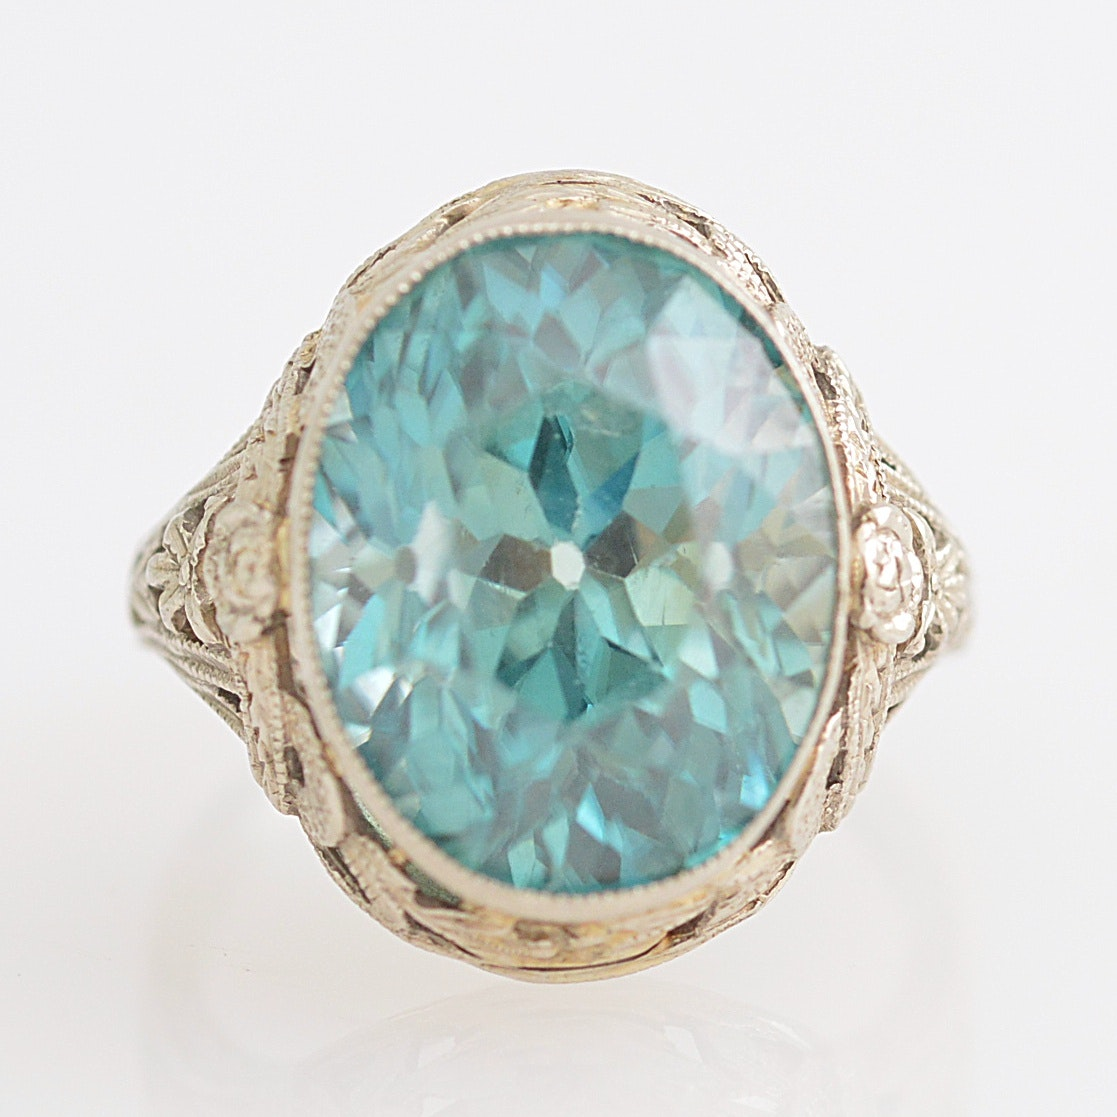 14K White Gold and Blue Zircon Ring